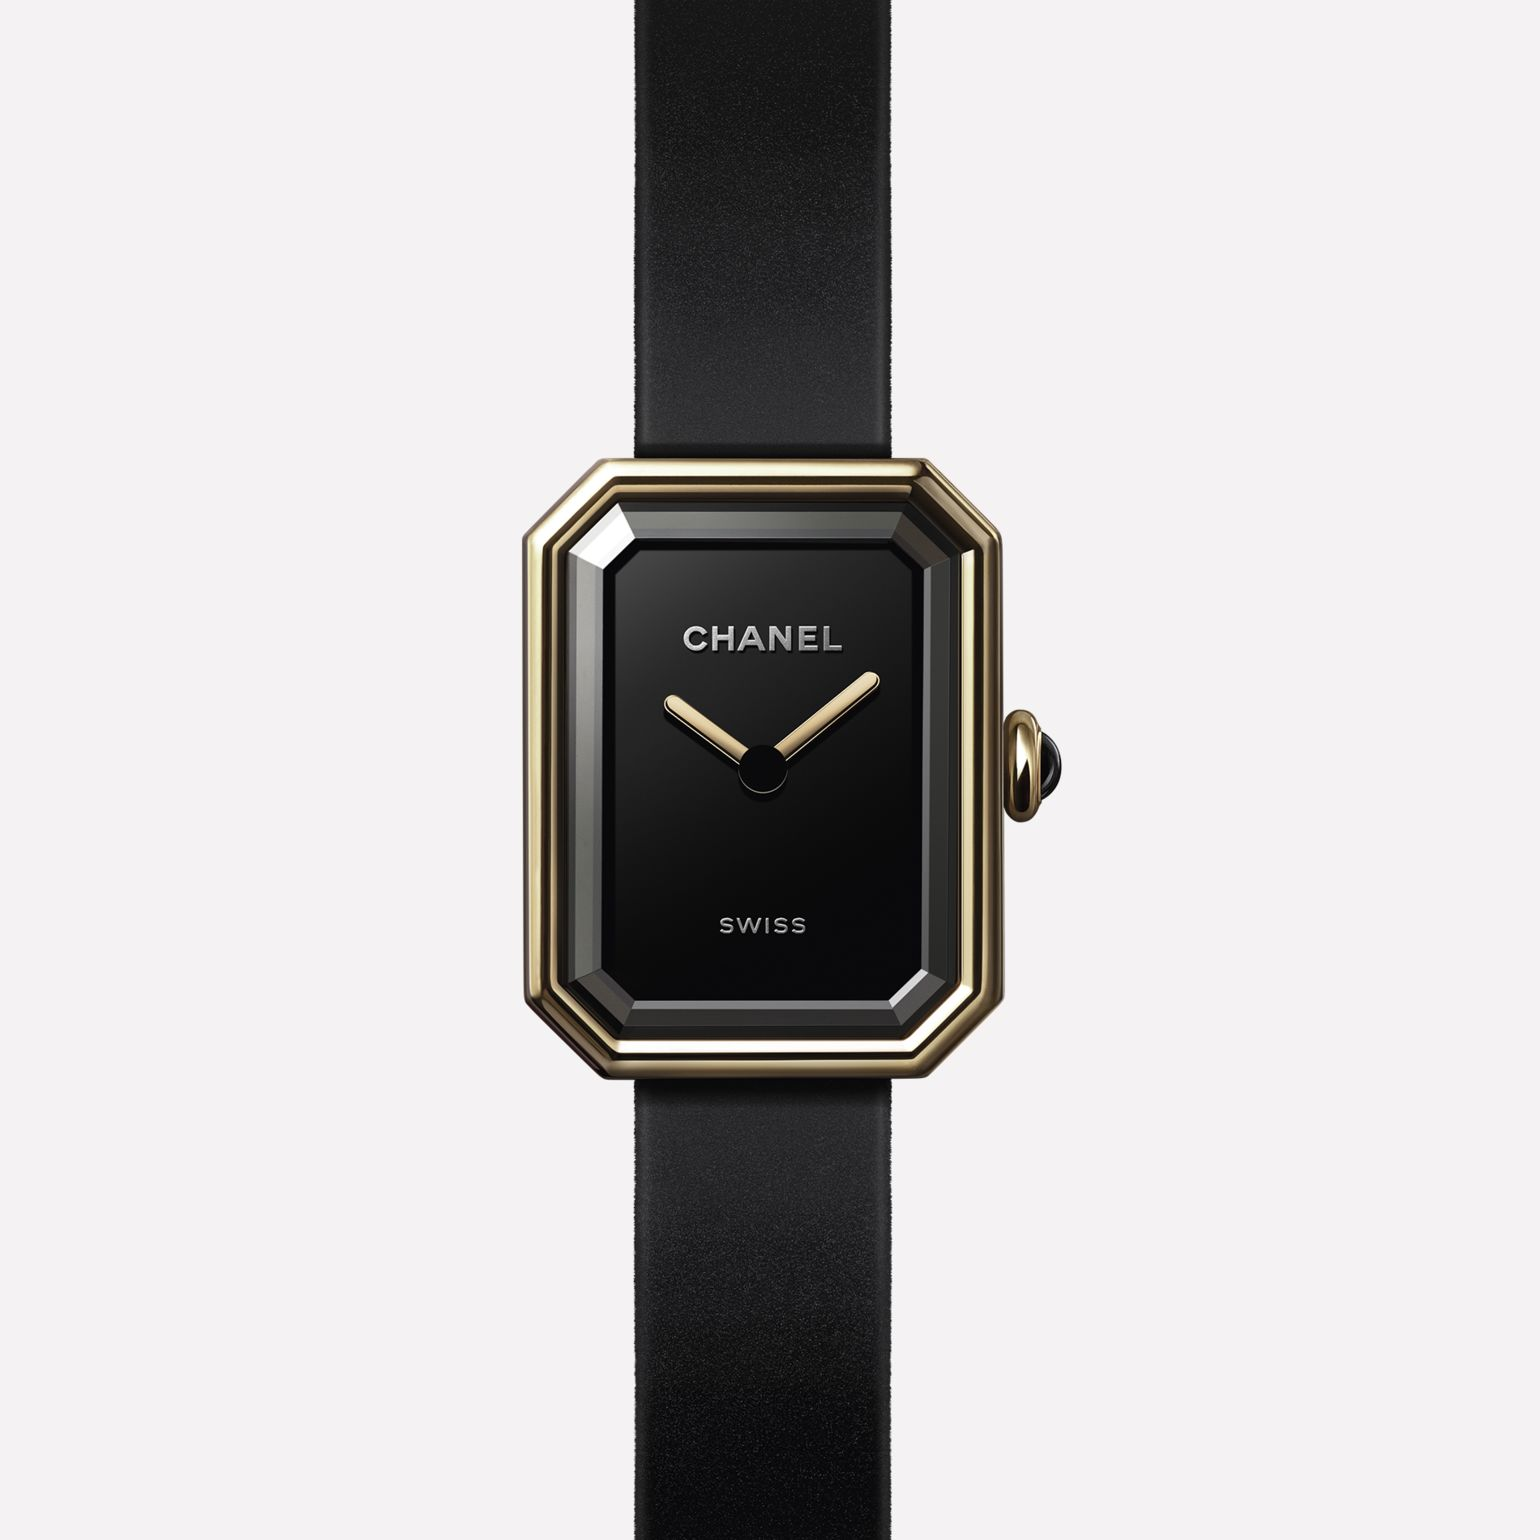 Première Velours Watch Yellow gold and titanium, black rubber strap with velvet touch, black lacquer dial